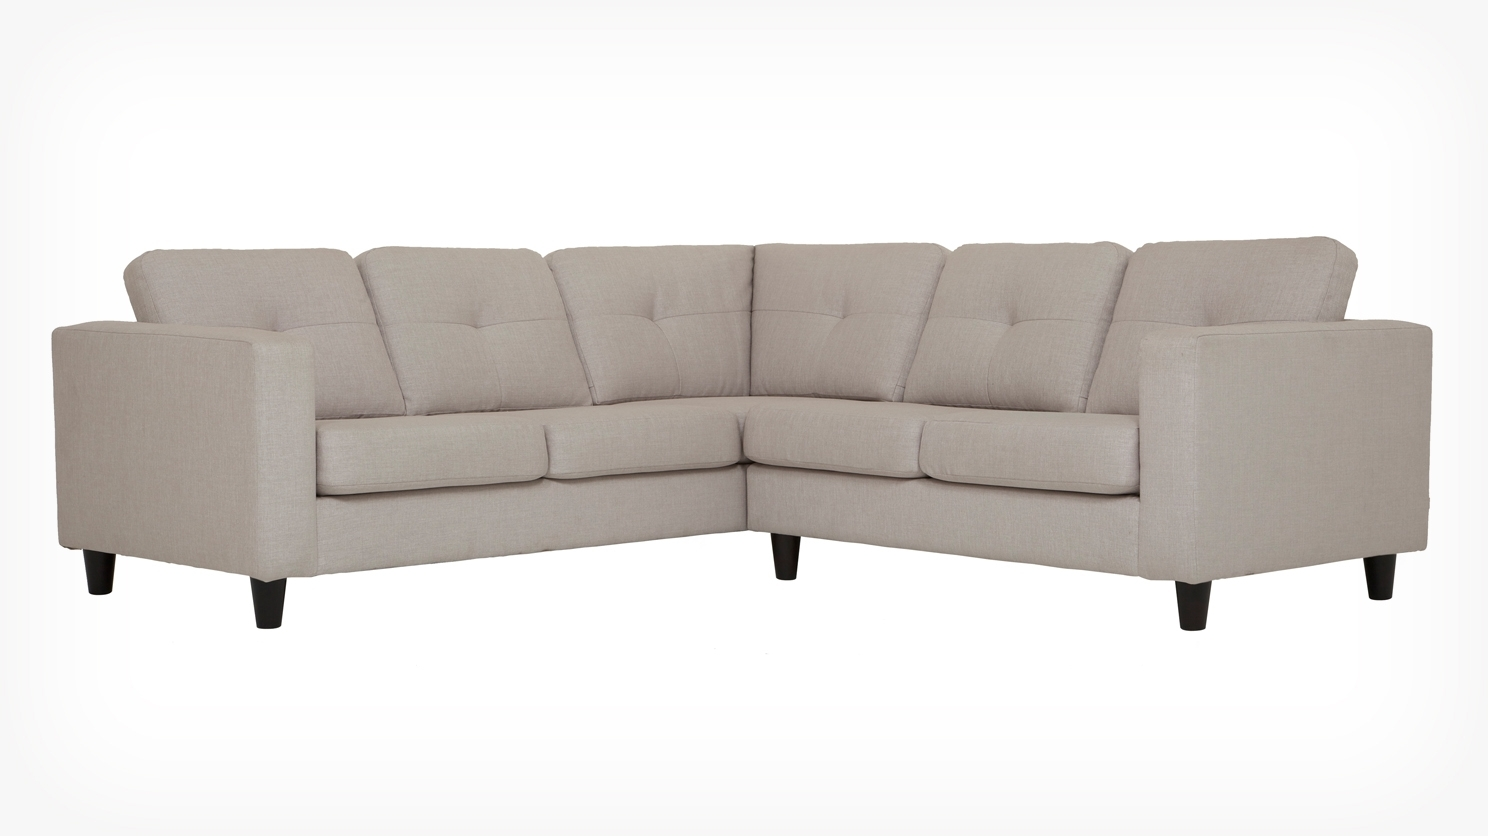 Eq3 | Living > Seating > Sectionals With Regard To Eq3 Sectional Sofas (View 3 of 10)